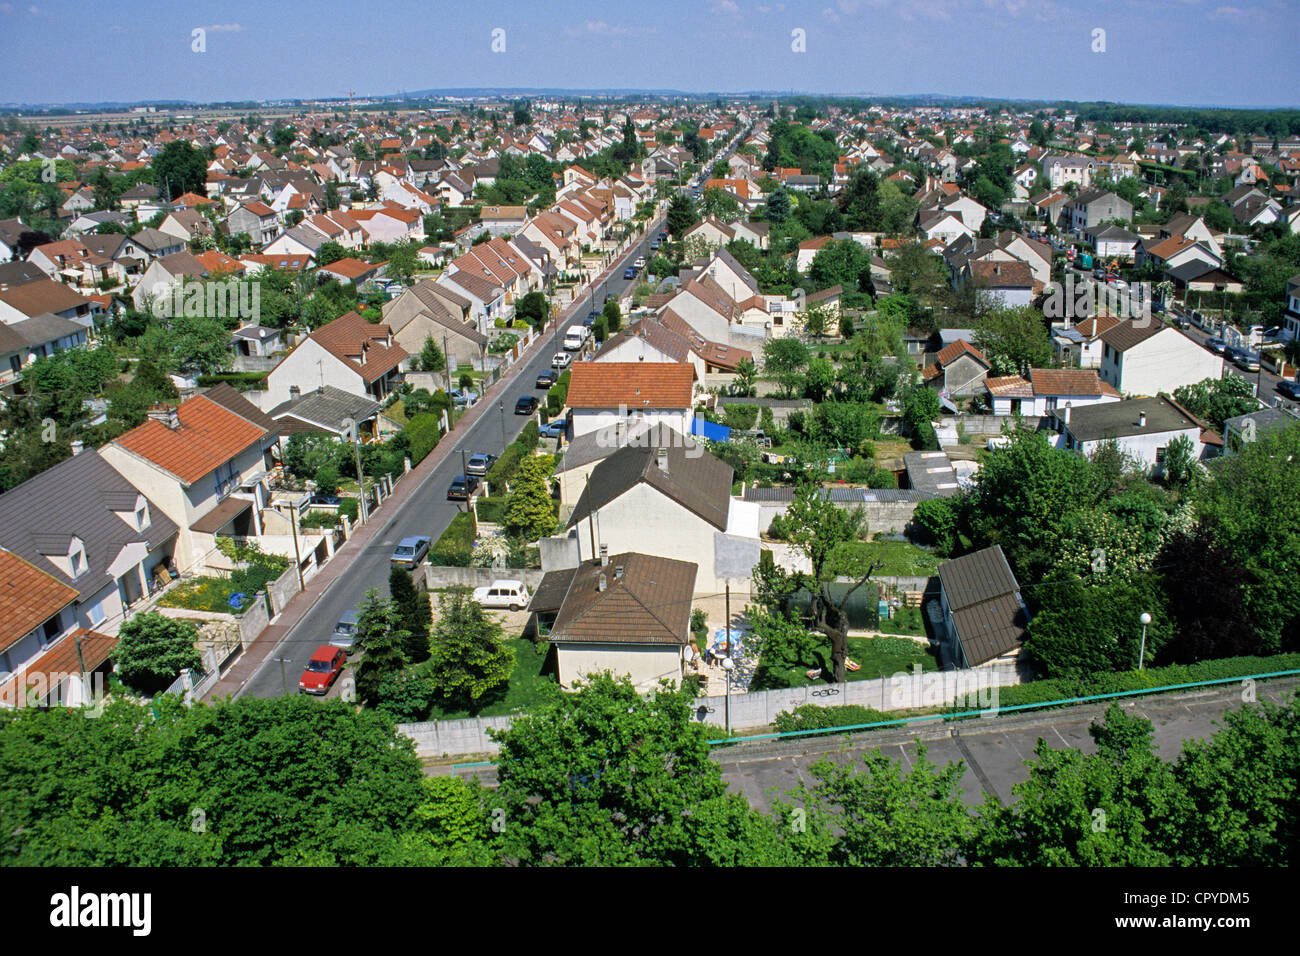 France, Seine Saint Denis, Tremblay en France, residential area in the suburbs of Paris - Stock Image